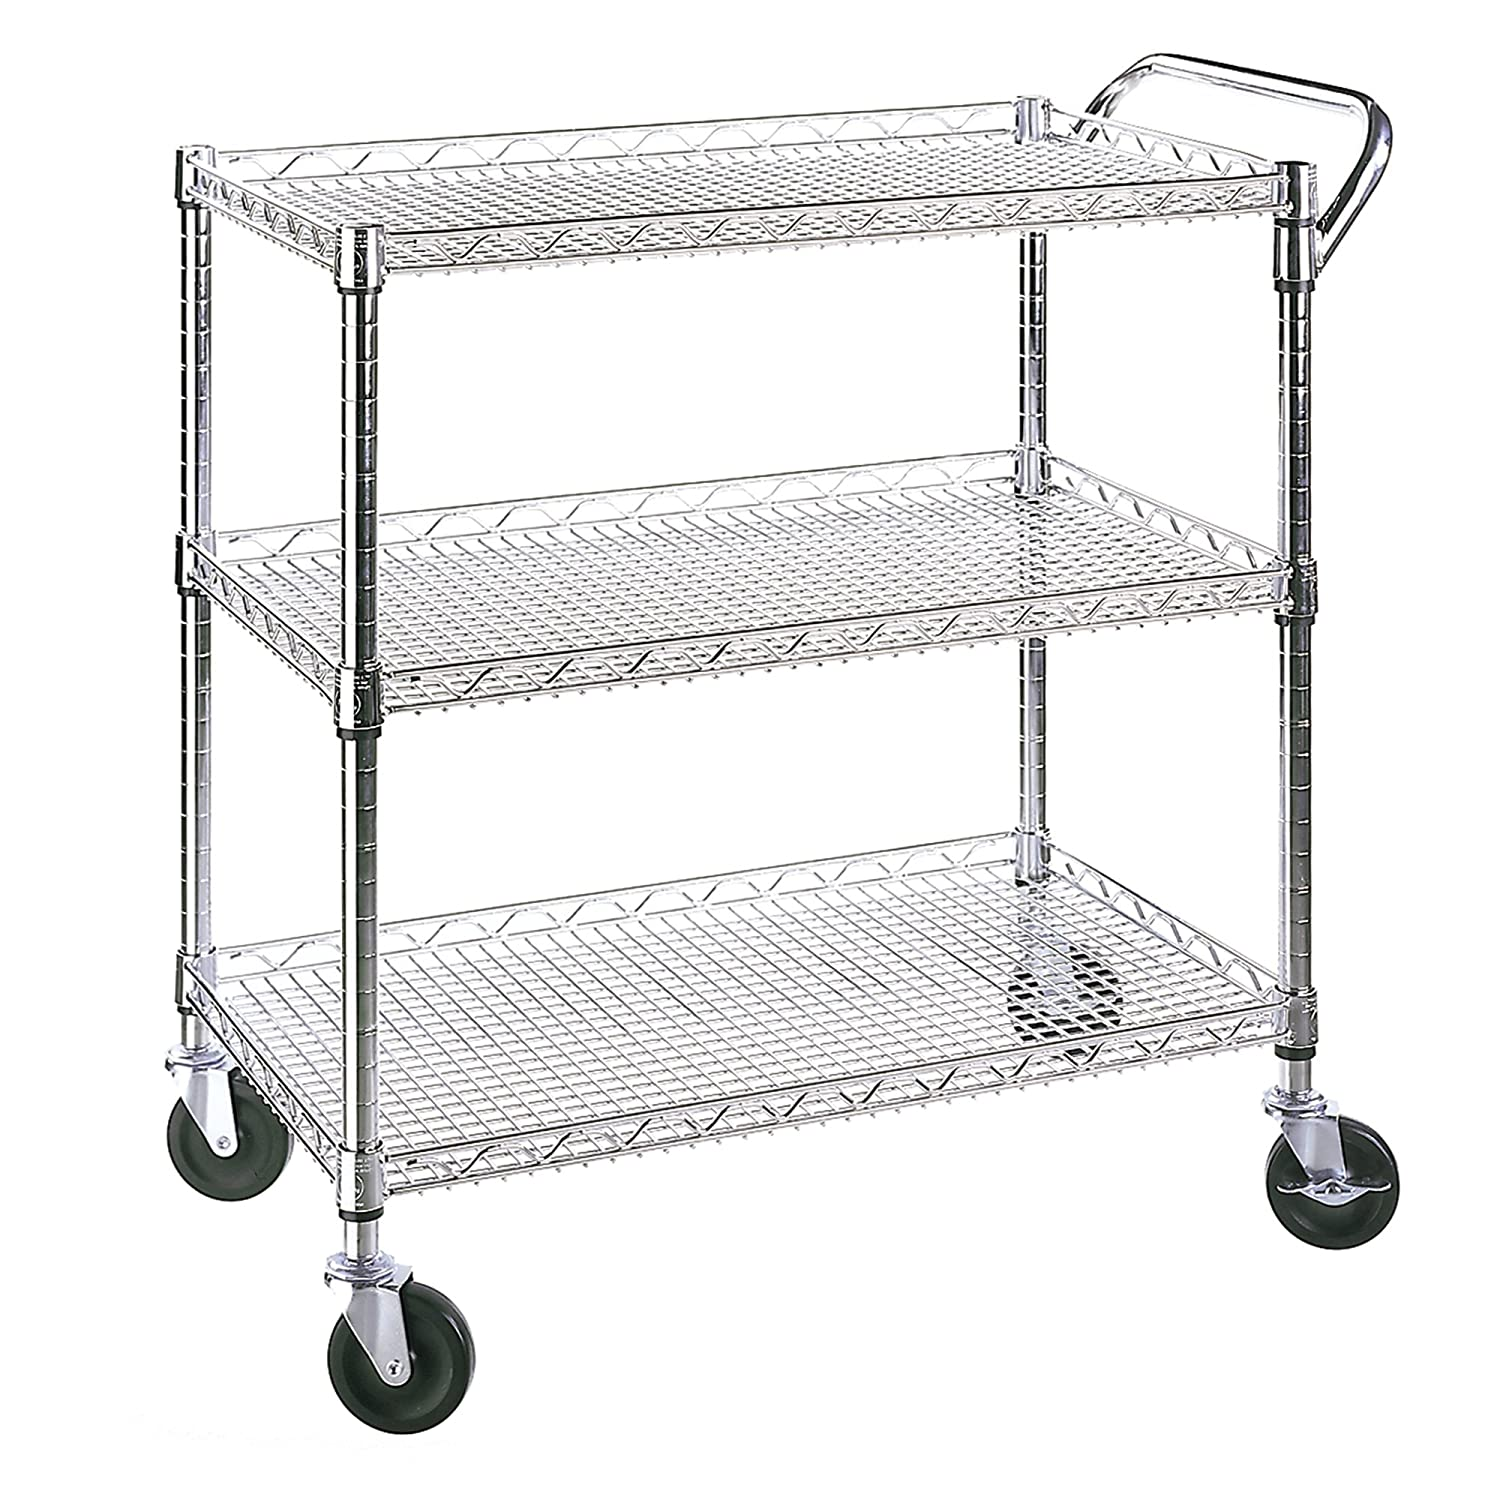 Seville Classics Industrial All-Purpose Utility Cart, NSF Listed SHE18304BZ